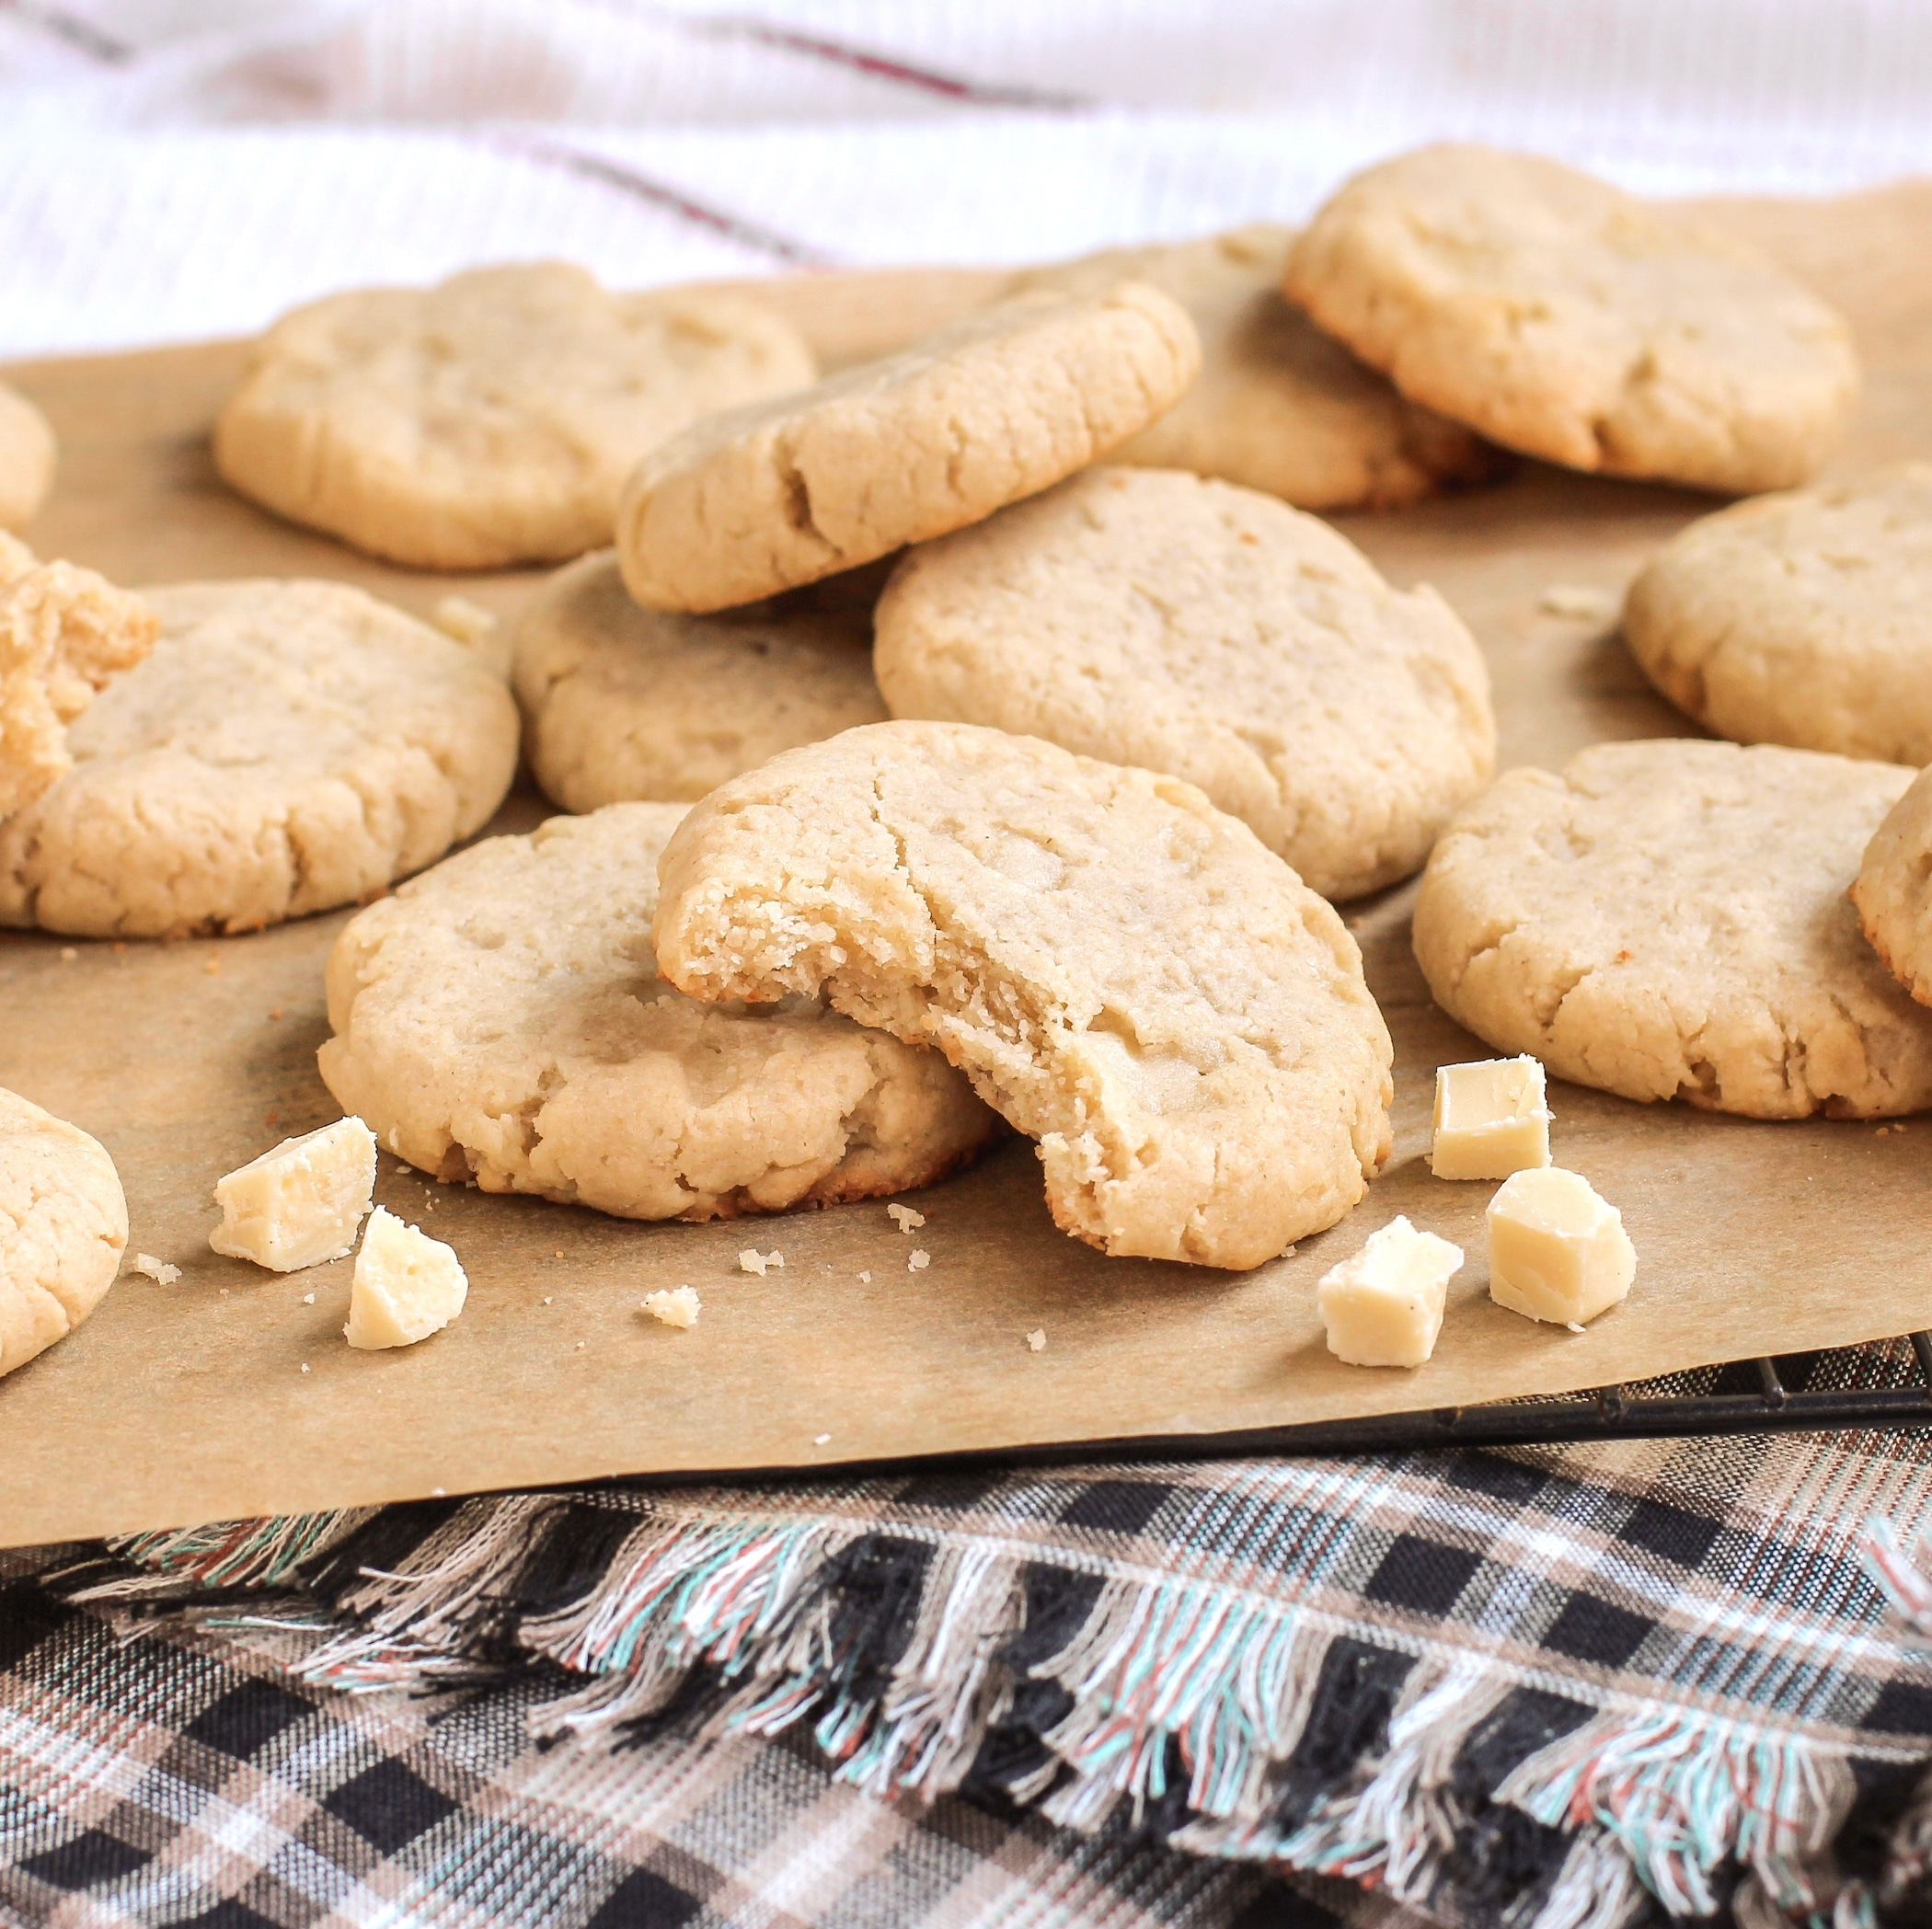 Healthy White Chocolate Macadamia Cookies - Desserts With Benefits